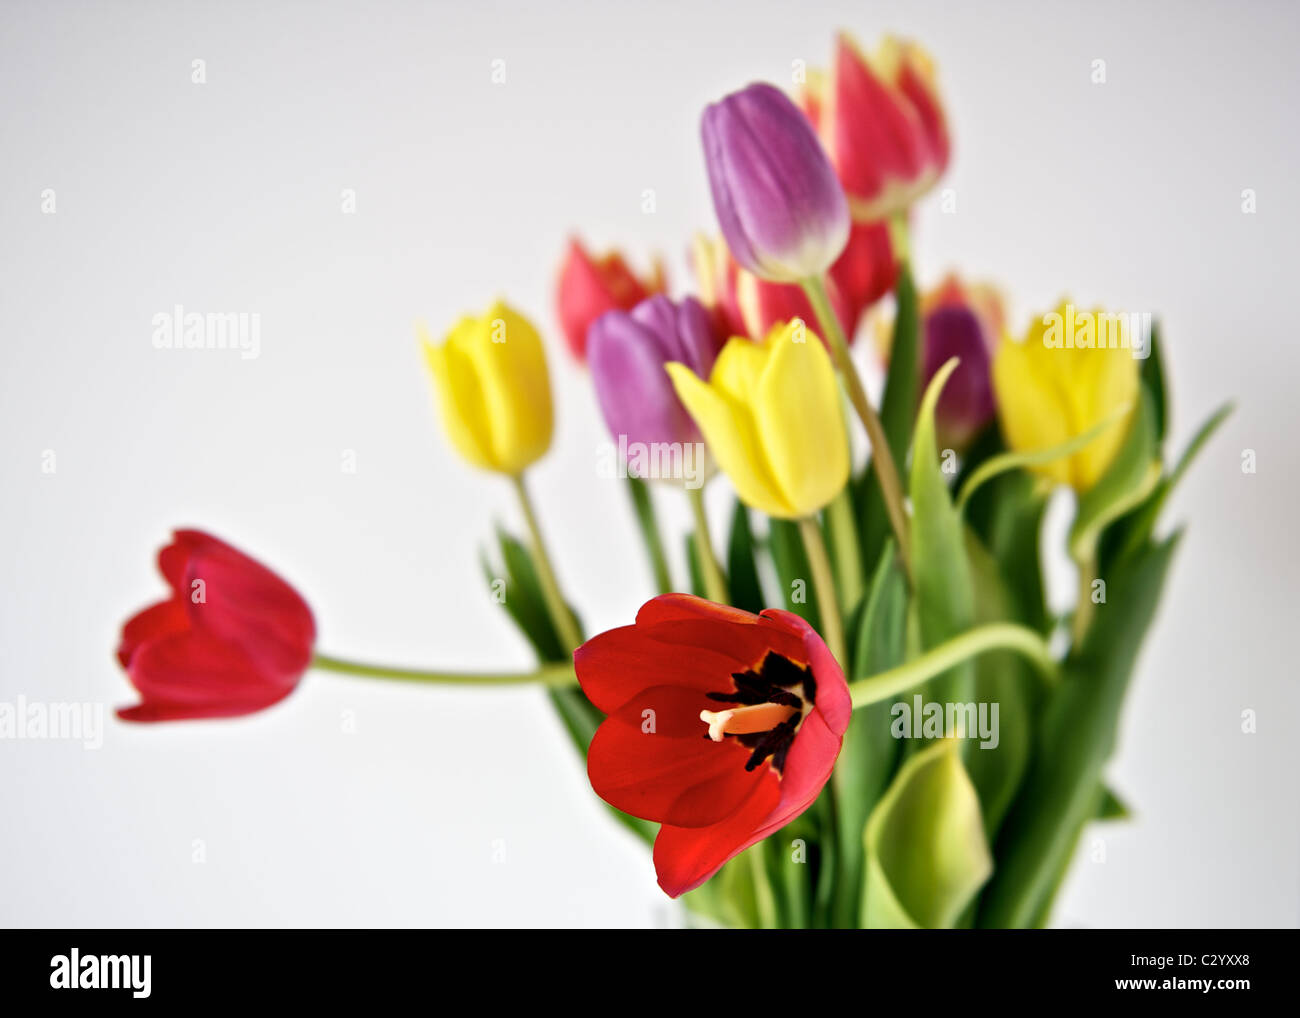 A bunch of colourful tulips. Stock Photo